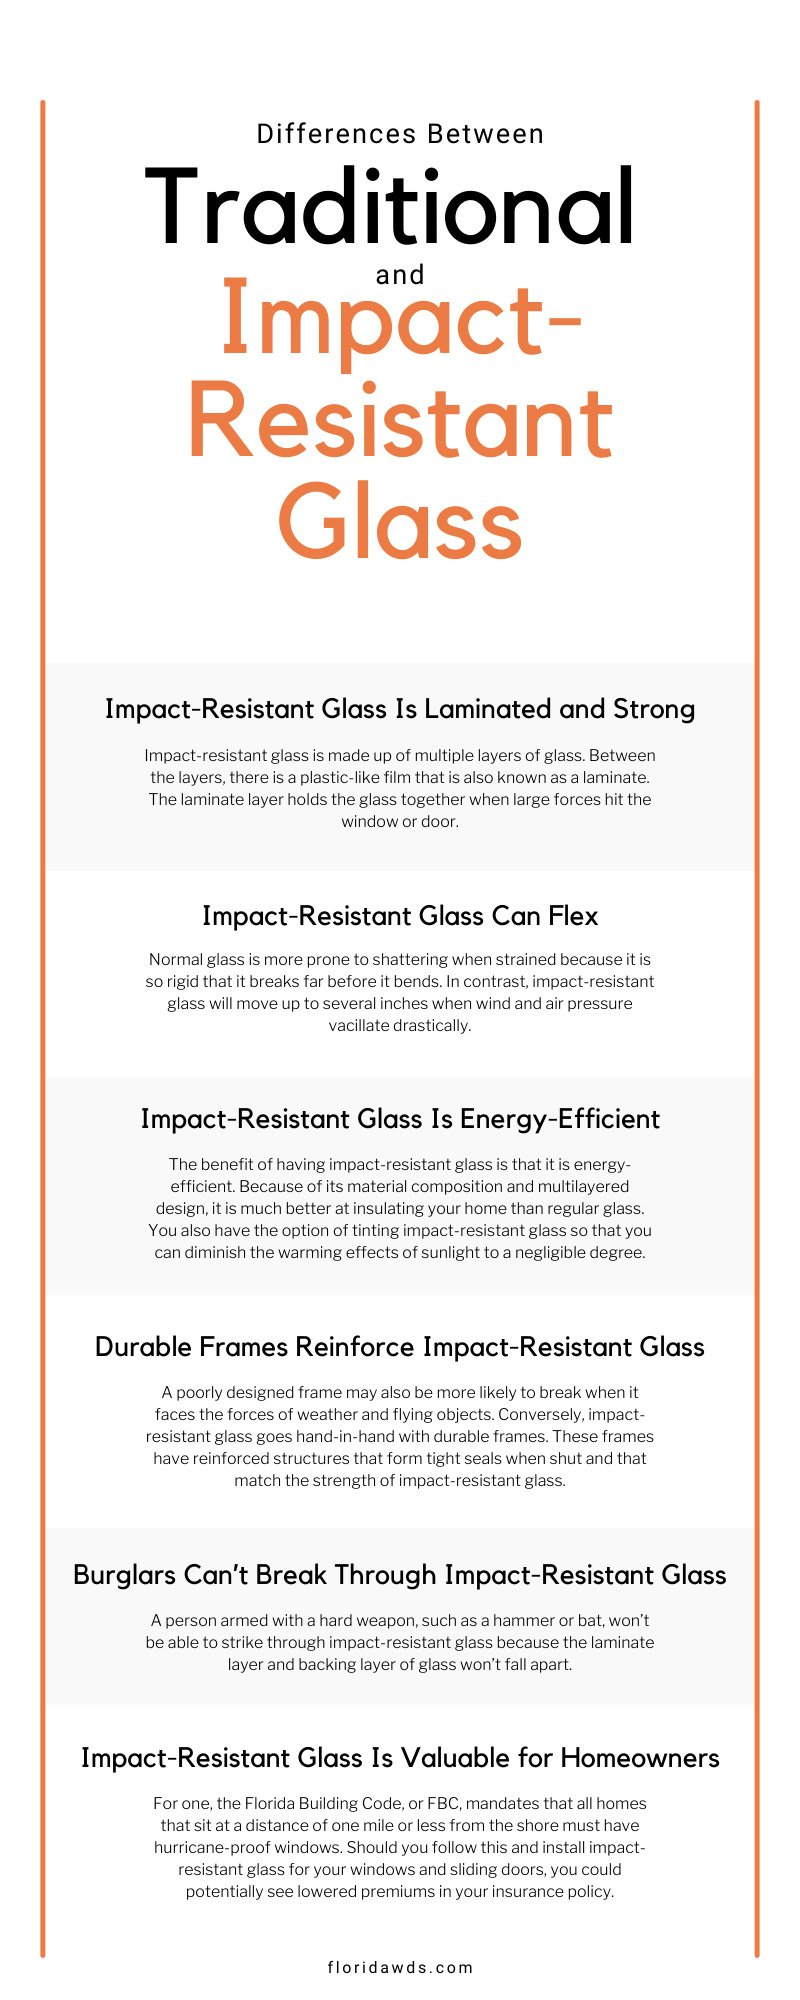 Differences Between Traditional and Impact-Resistant Glass